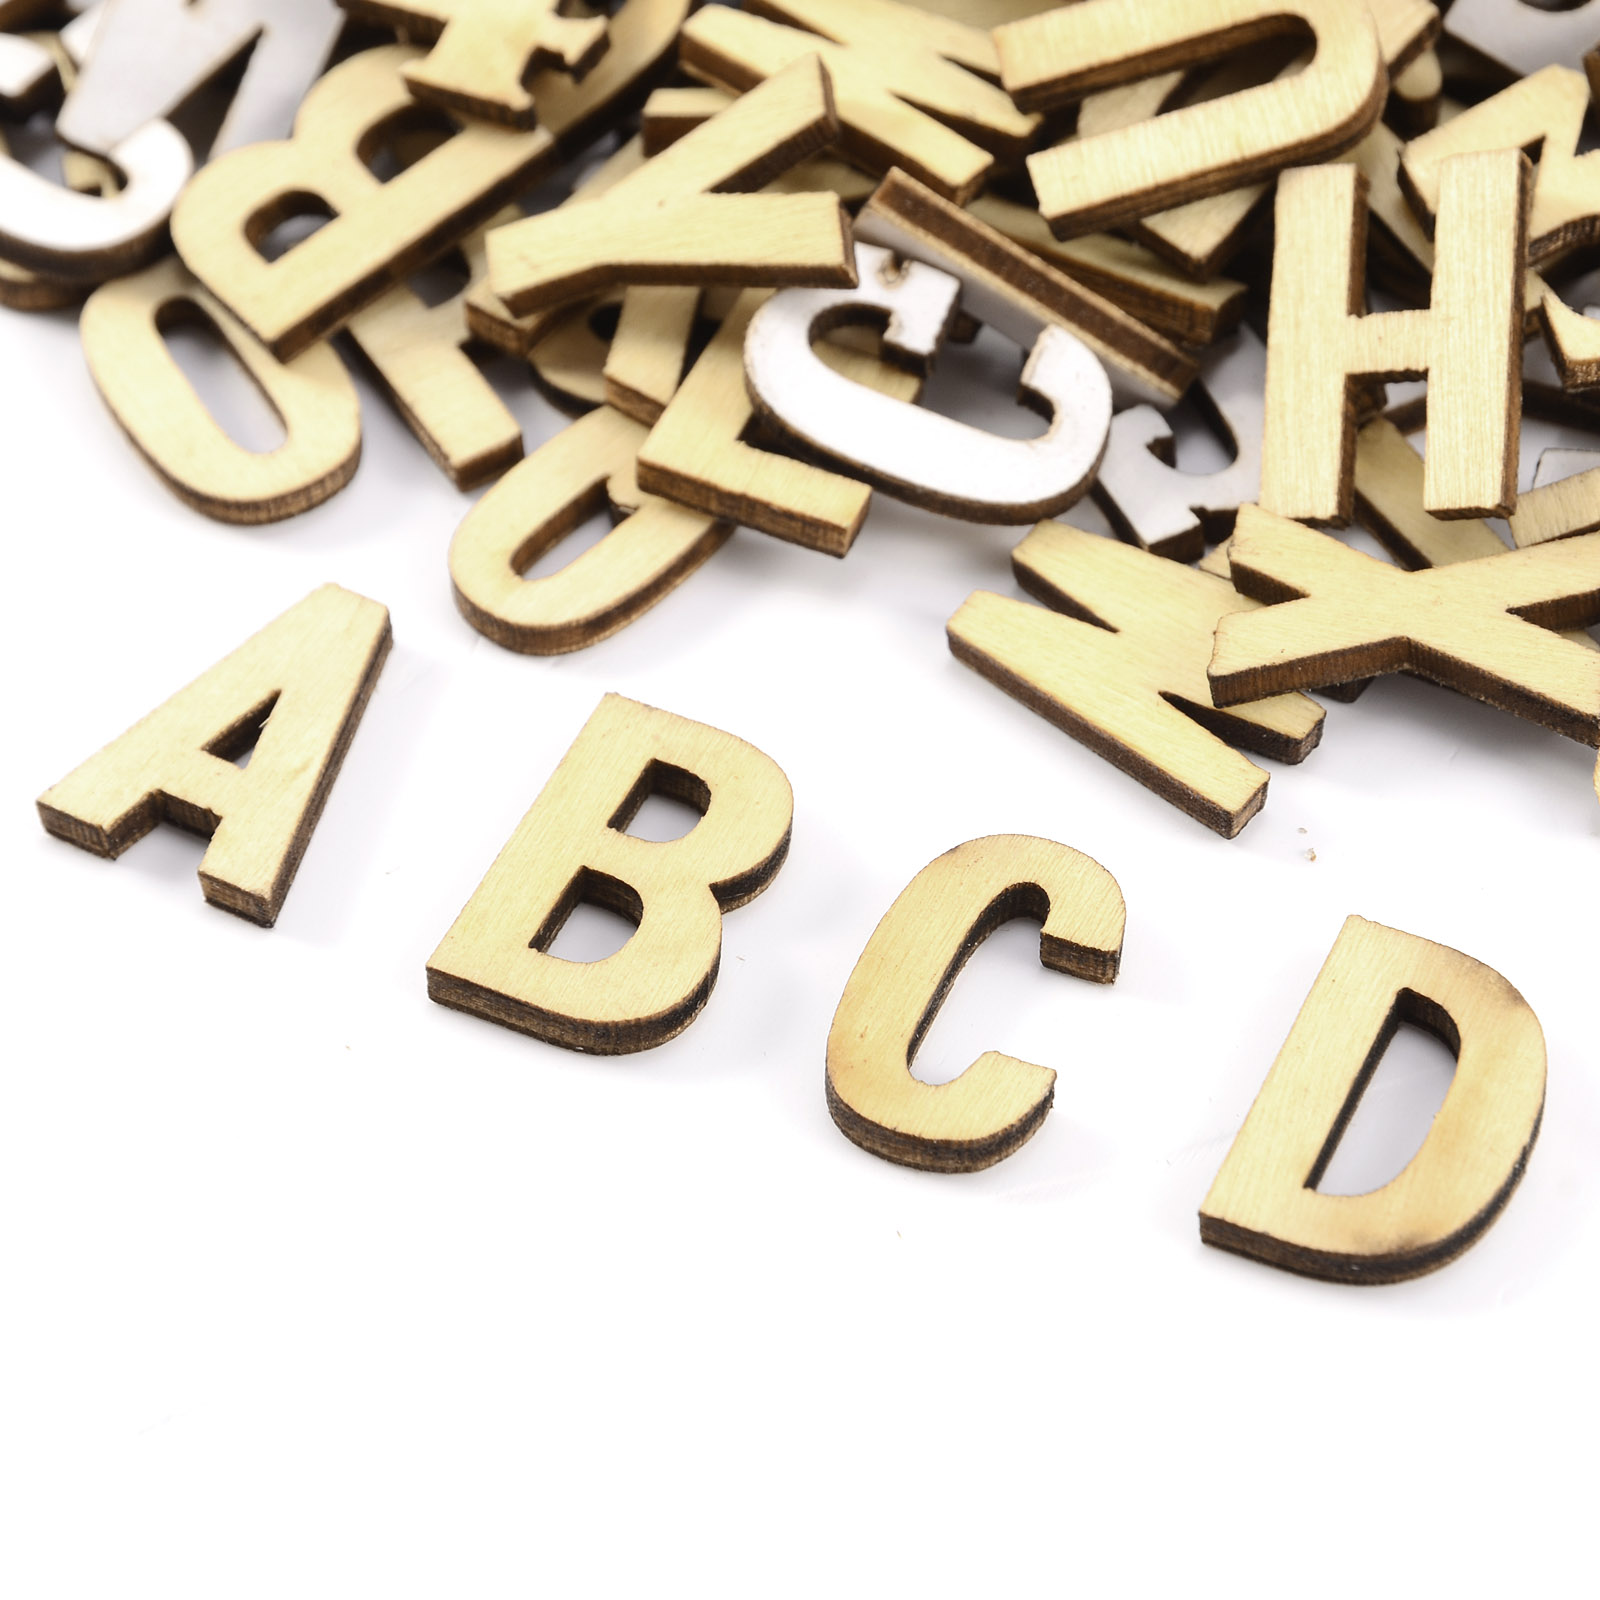 270 plain wooden small letter digits adhesive letters for Small wooden letters for crafts